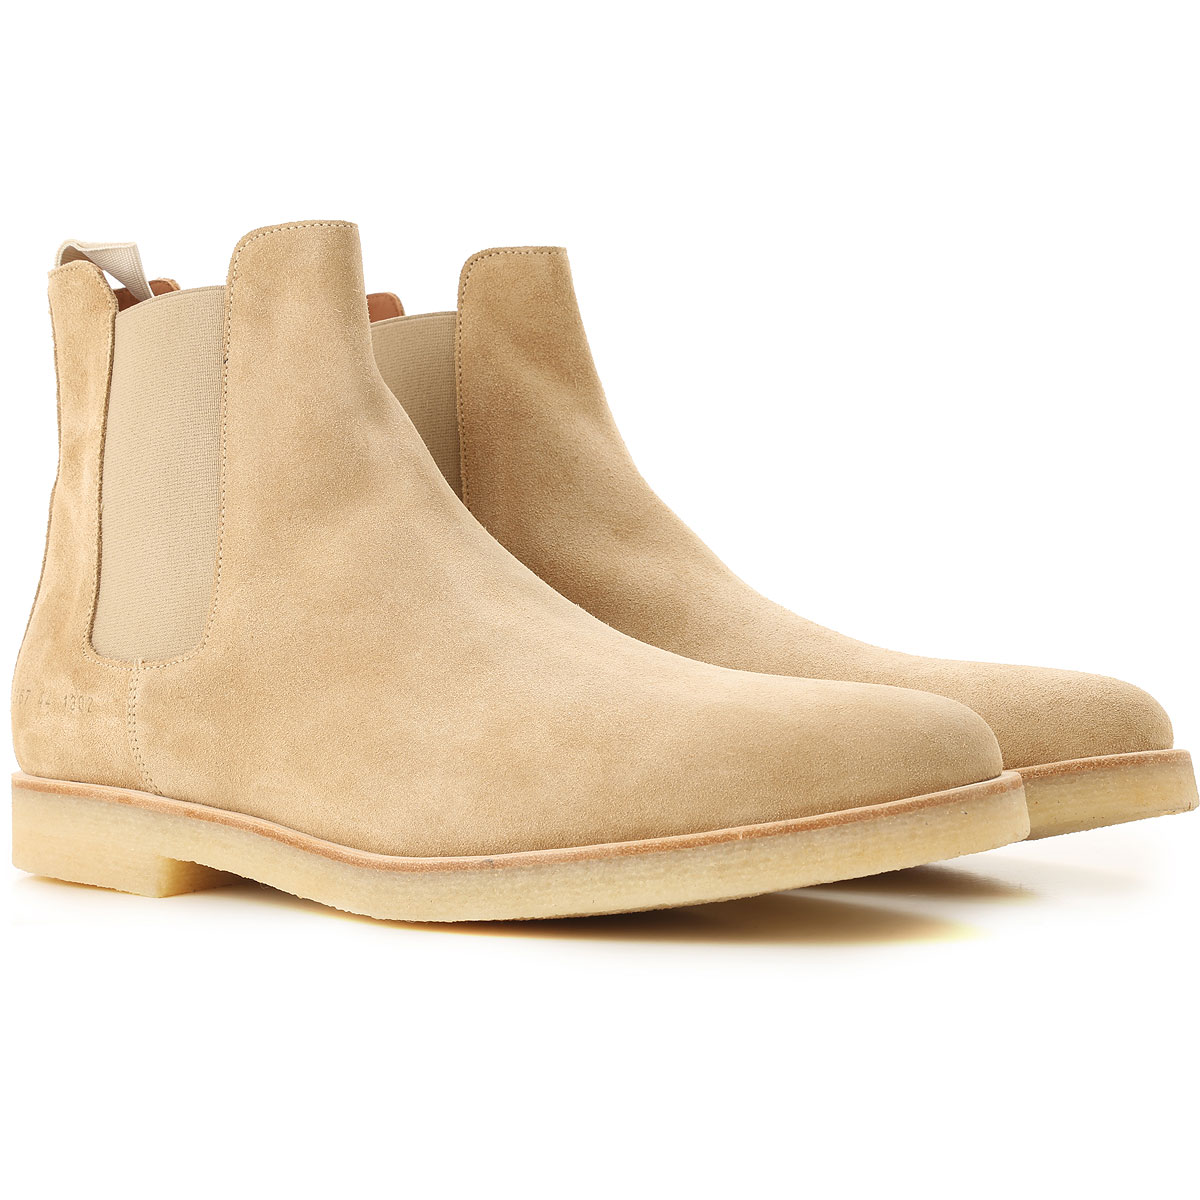 Image of Common Projects Boots for Men, Booties, Beige, Suede leather, 2017, 10 10.5 7.5 8 9